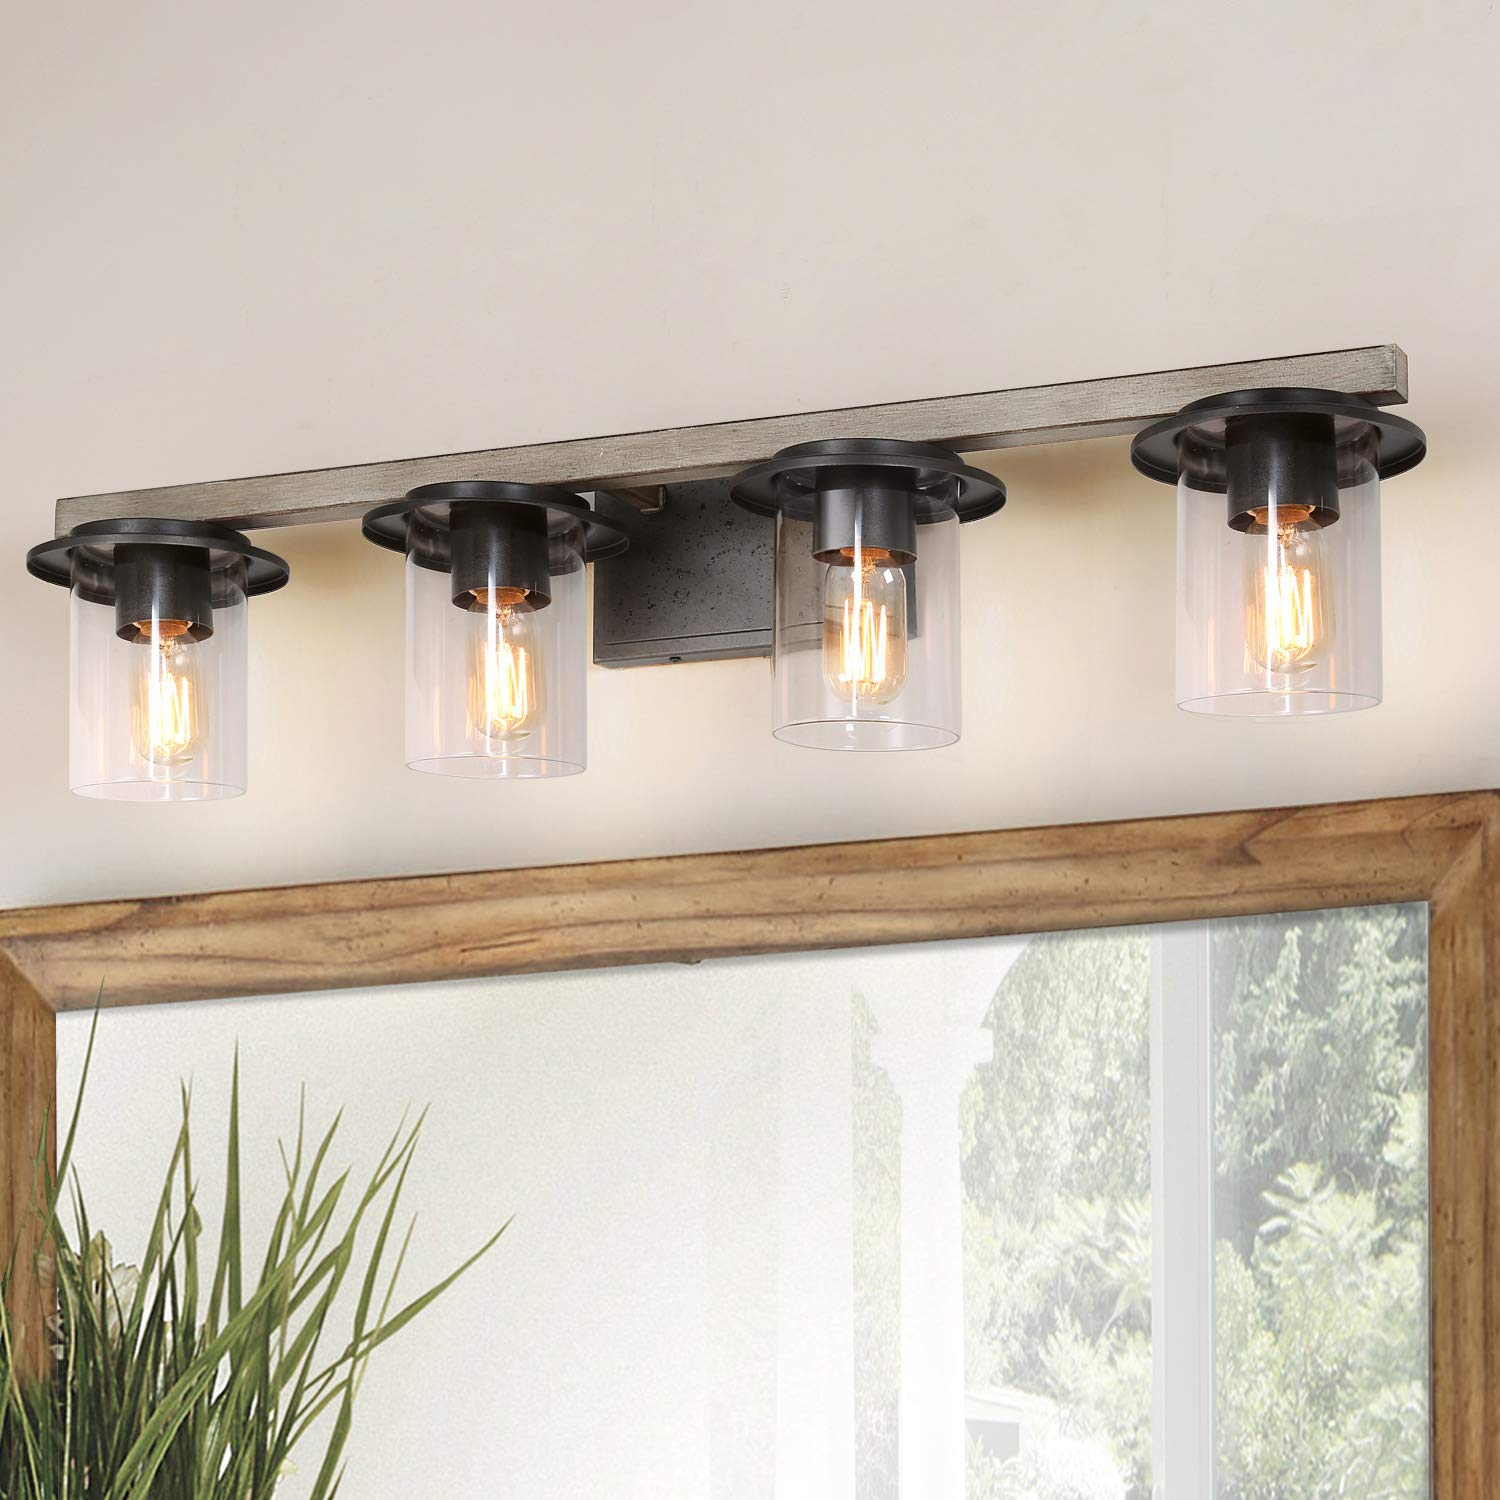 LALUZ Bathroom Light Fixtures, Faux Wood Bathroom Lights Over Mirror with Clear Glass Shades, 33 Inches -A03398